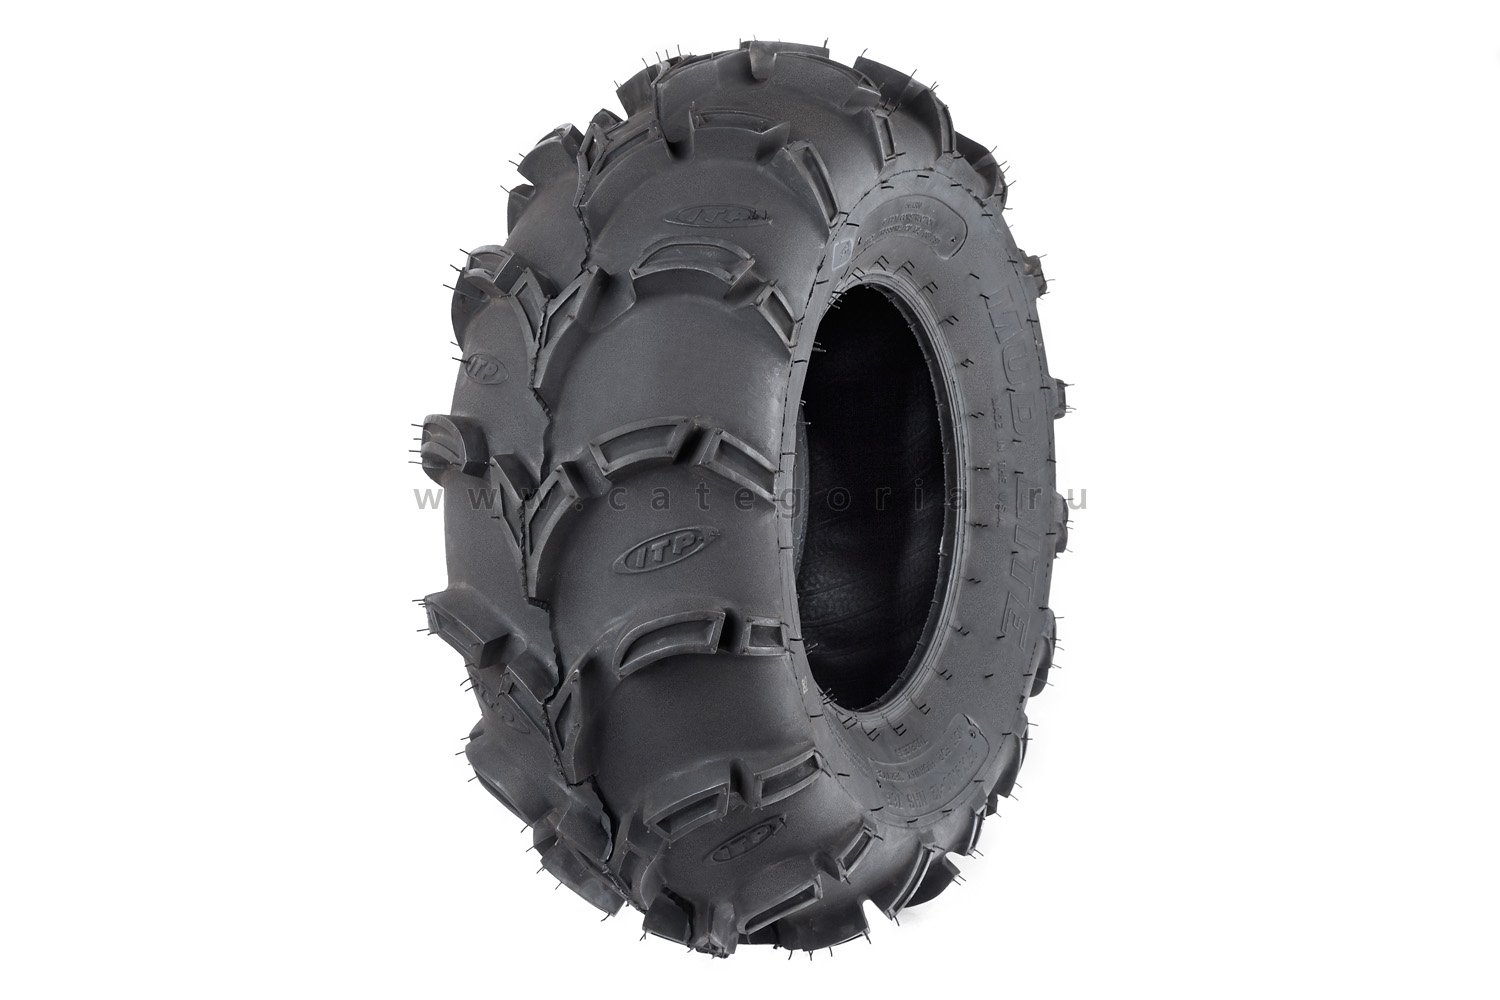 ITP Mud Lite XL 28x12 R14 - шина для квадроцикла